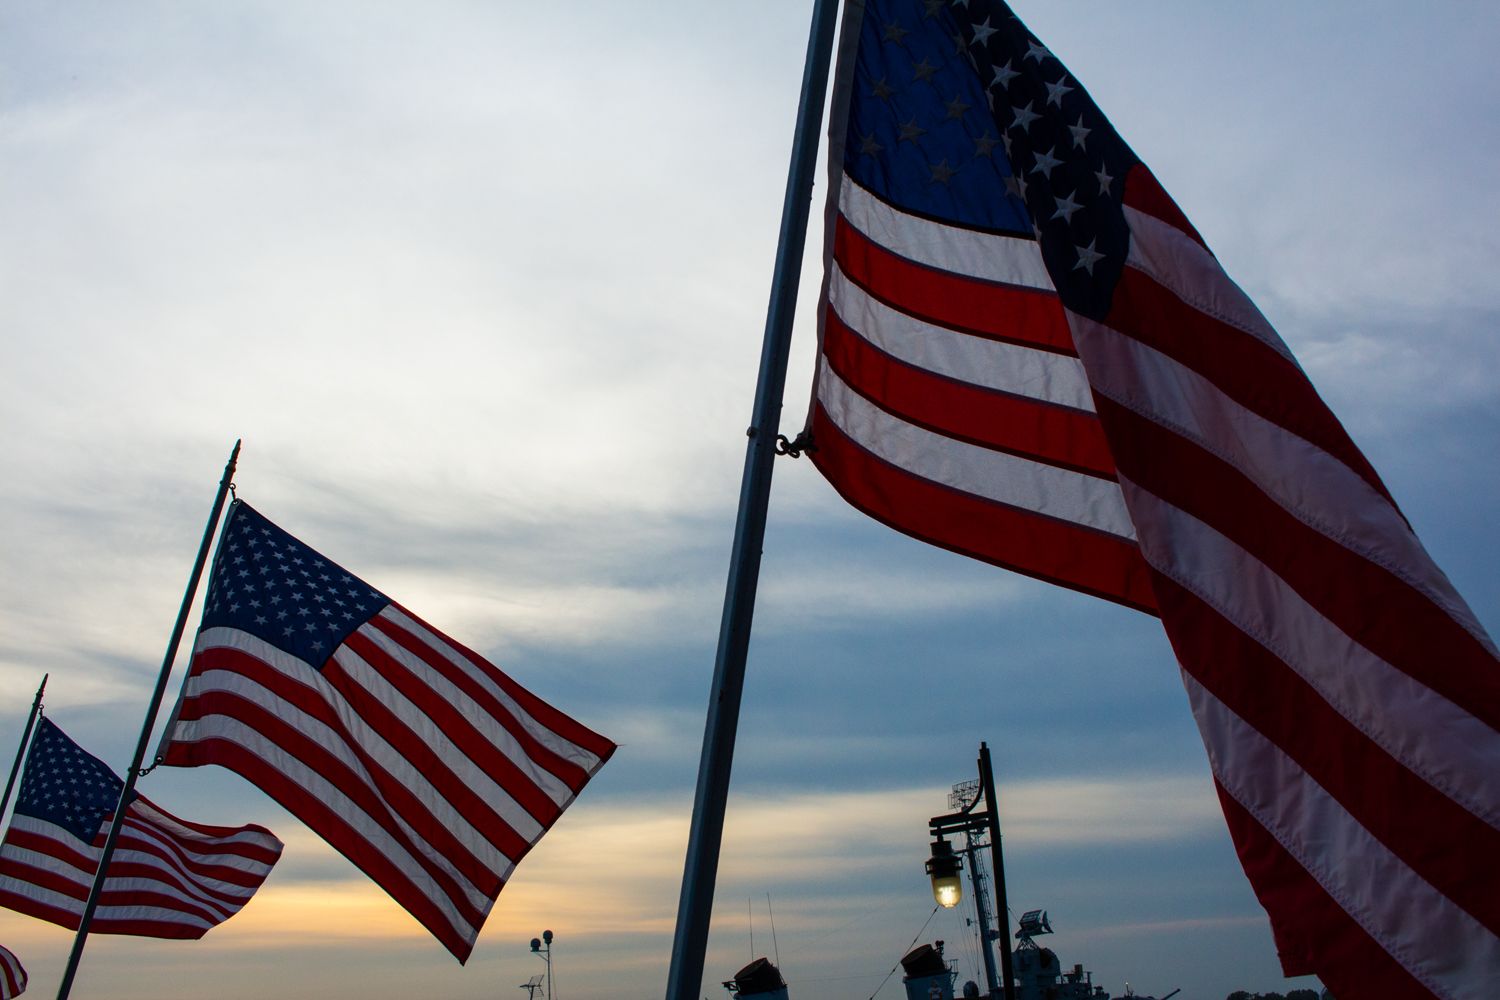 Flags_at_Sunset_4.jpg